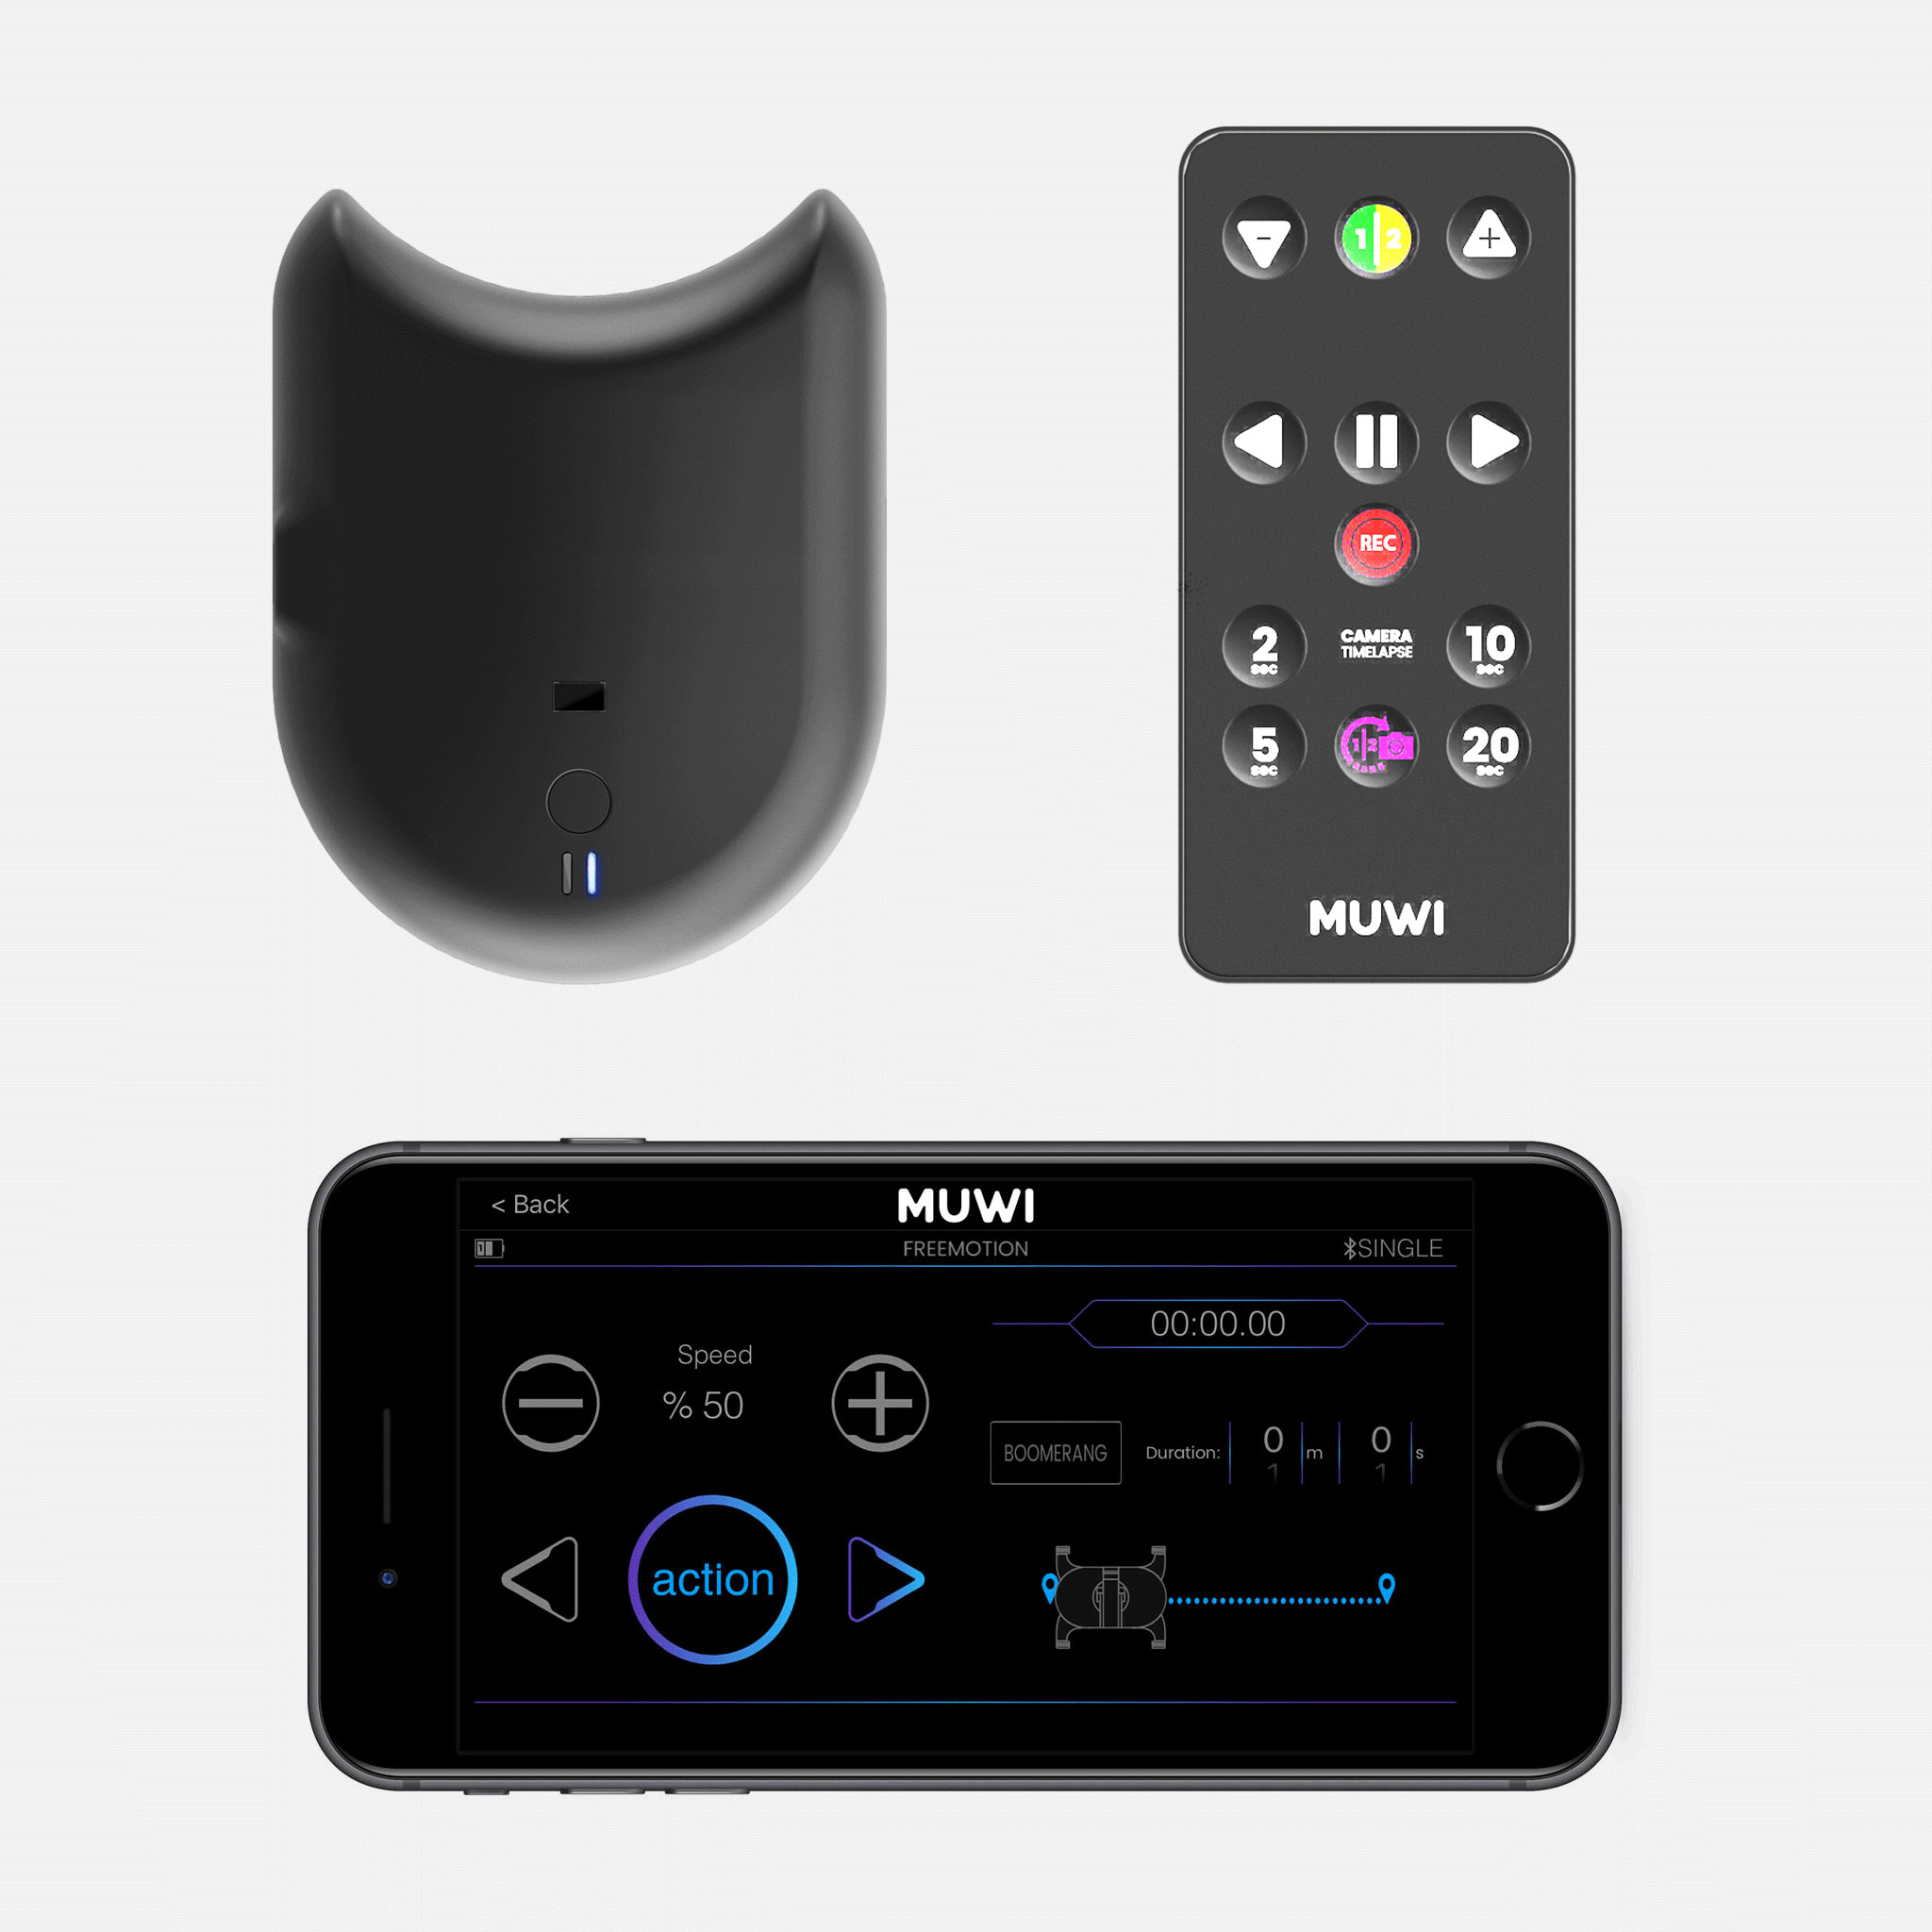 Flow X can be controlled with remote controller or your smartphone by MUWI App.